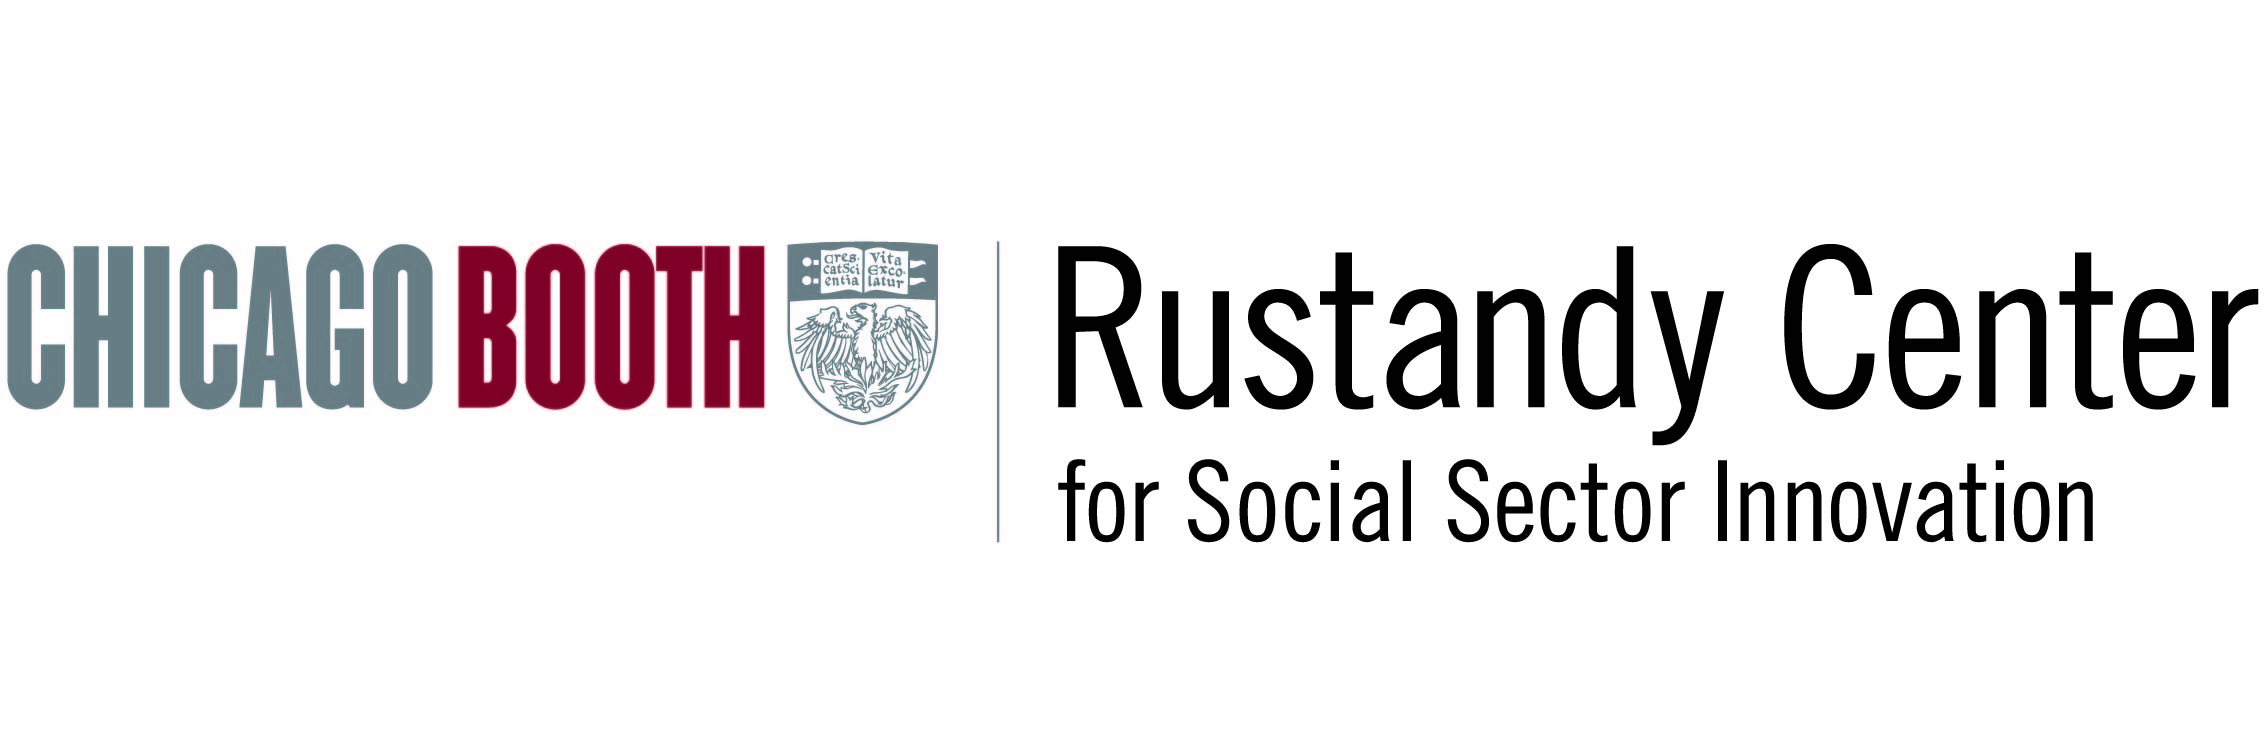 The Rustandy Center for Social Sector Innovation, The University of Chicago Booth School of Business